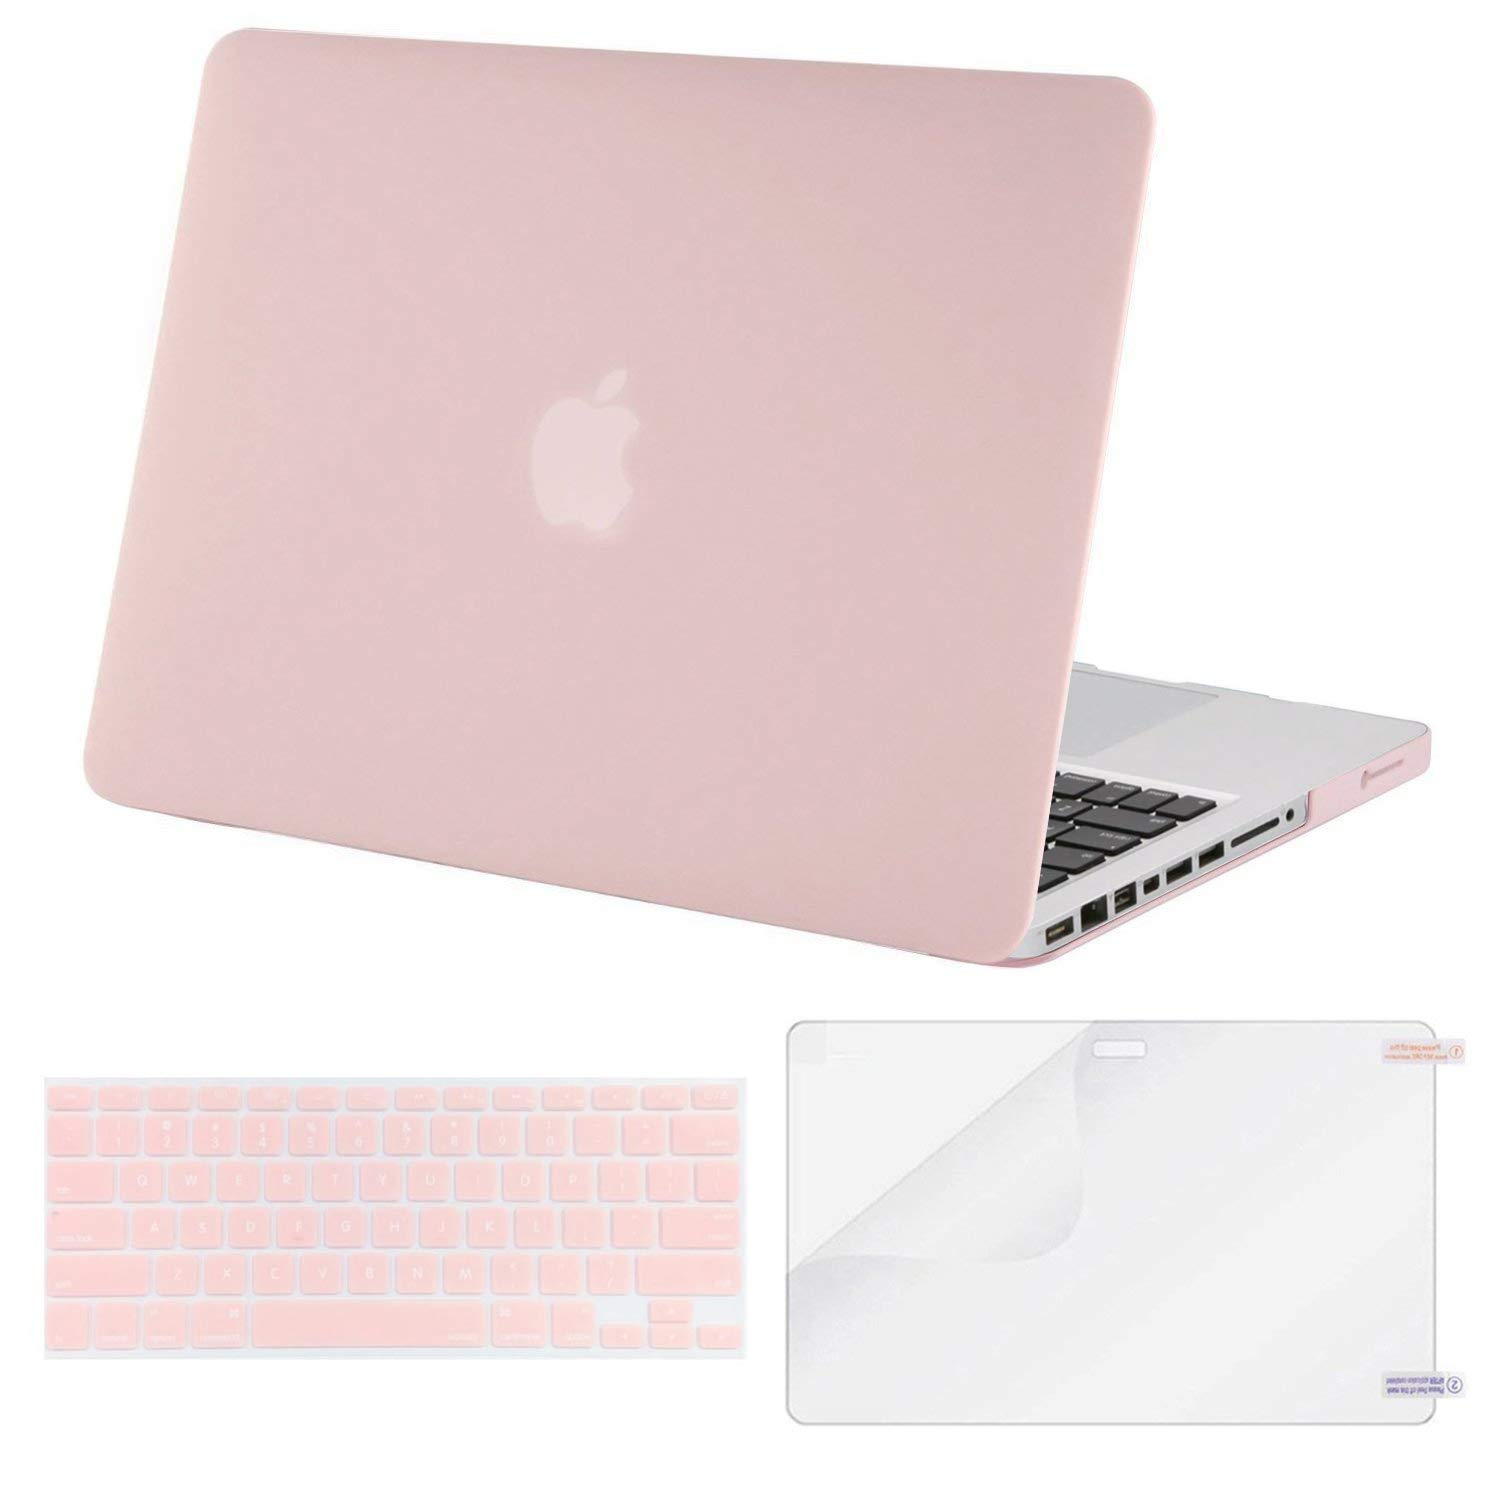 MOSISO Plastic Hard Shell Case & Keyboard Cover & Screen Protector Only Compatible Old MacBook Pro 13 Inch (A1278 CD-ROM), Release Early 2012/2011/2010/2009/2008, Rose Quartz